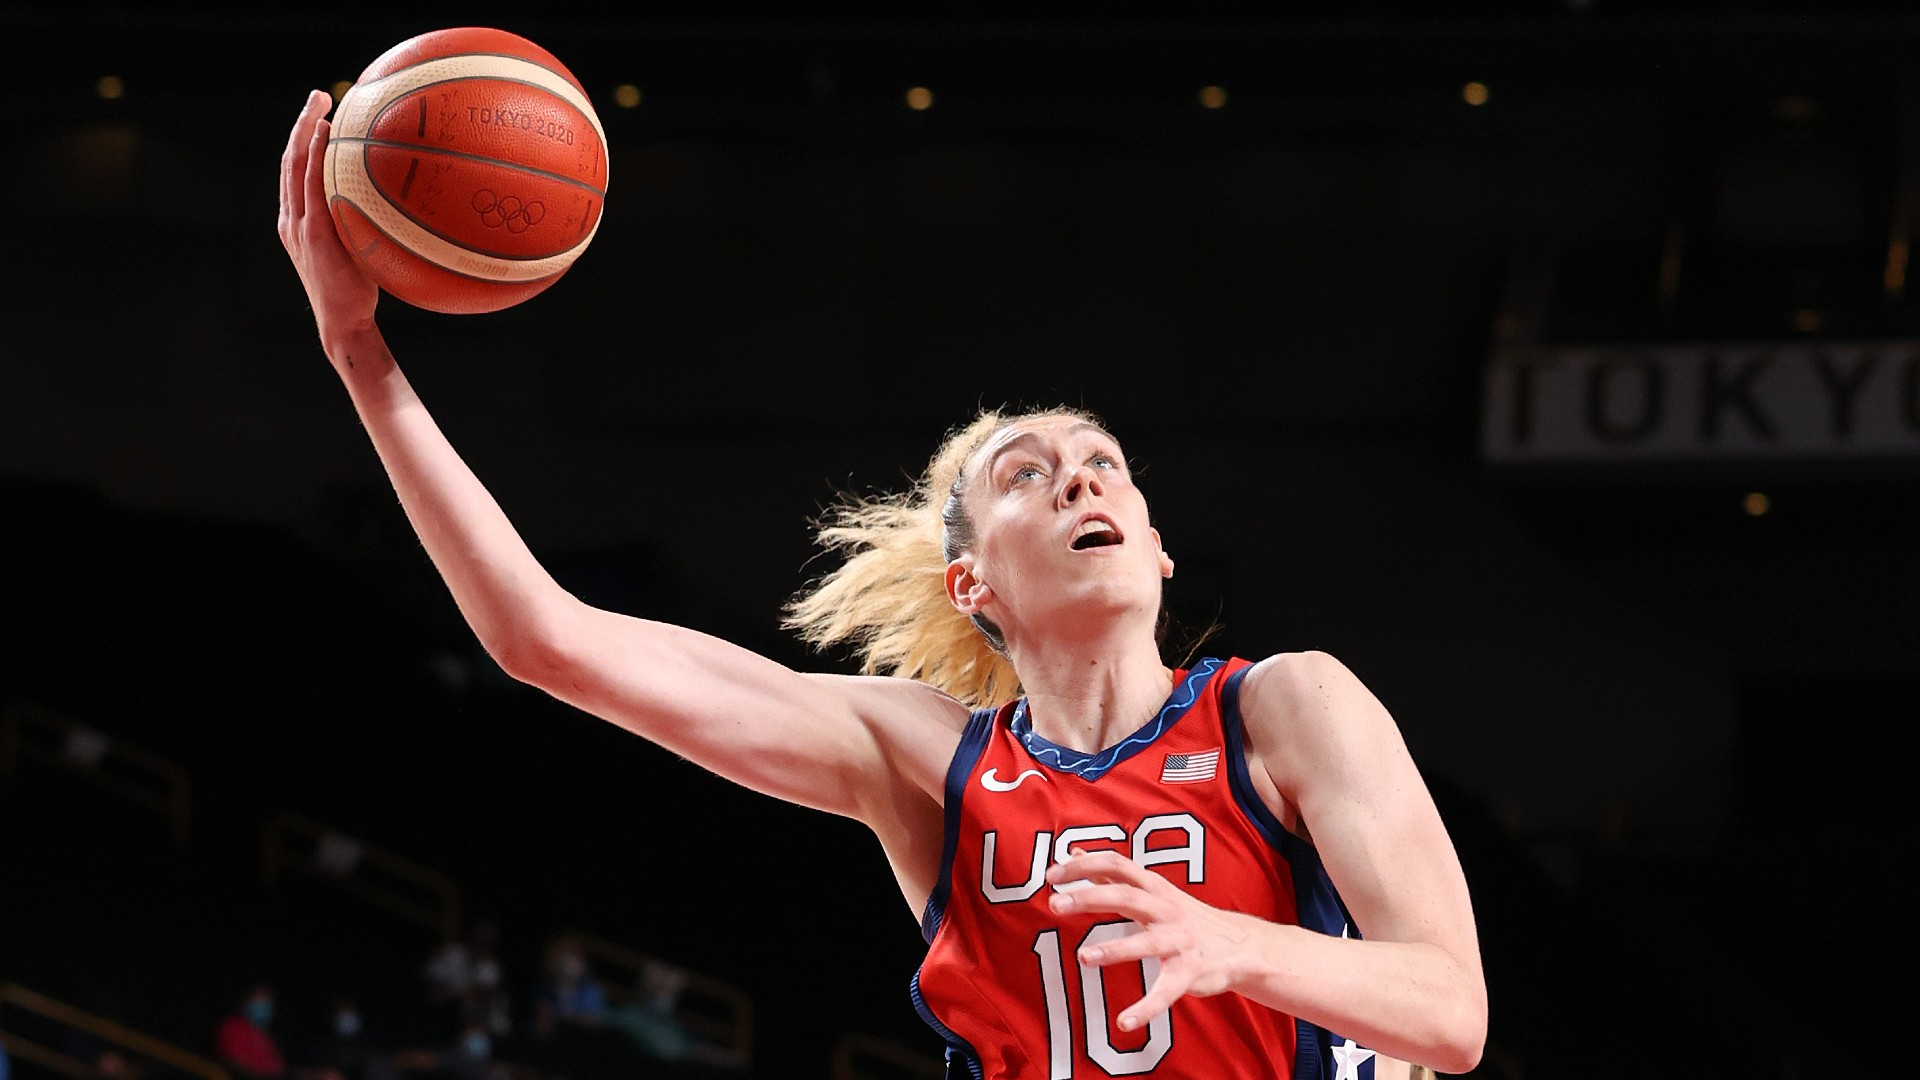 USA women's basketball vs. Serbia time, channel and television schedule to watch the 2021 Olympic semi-finals